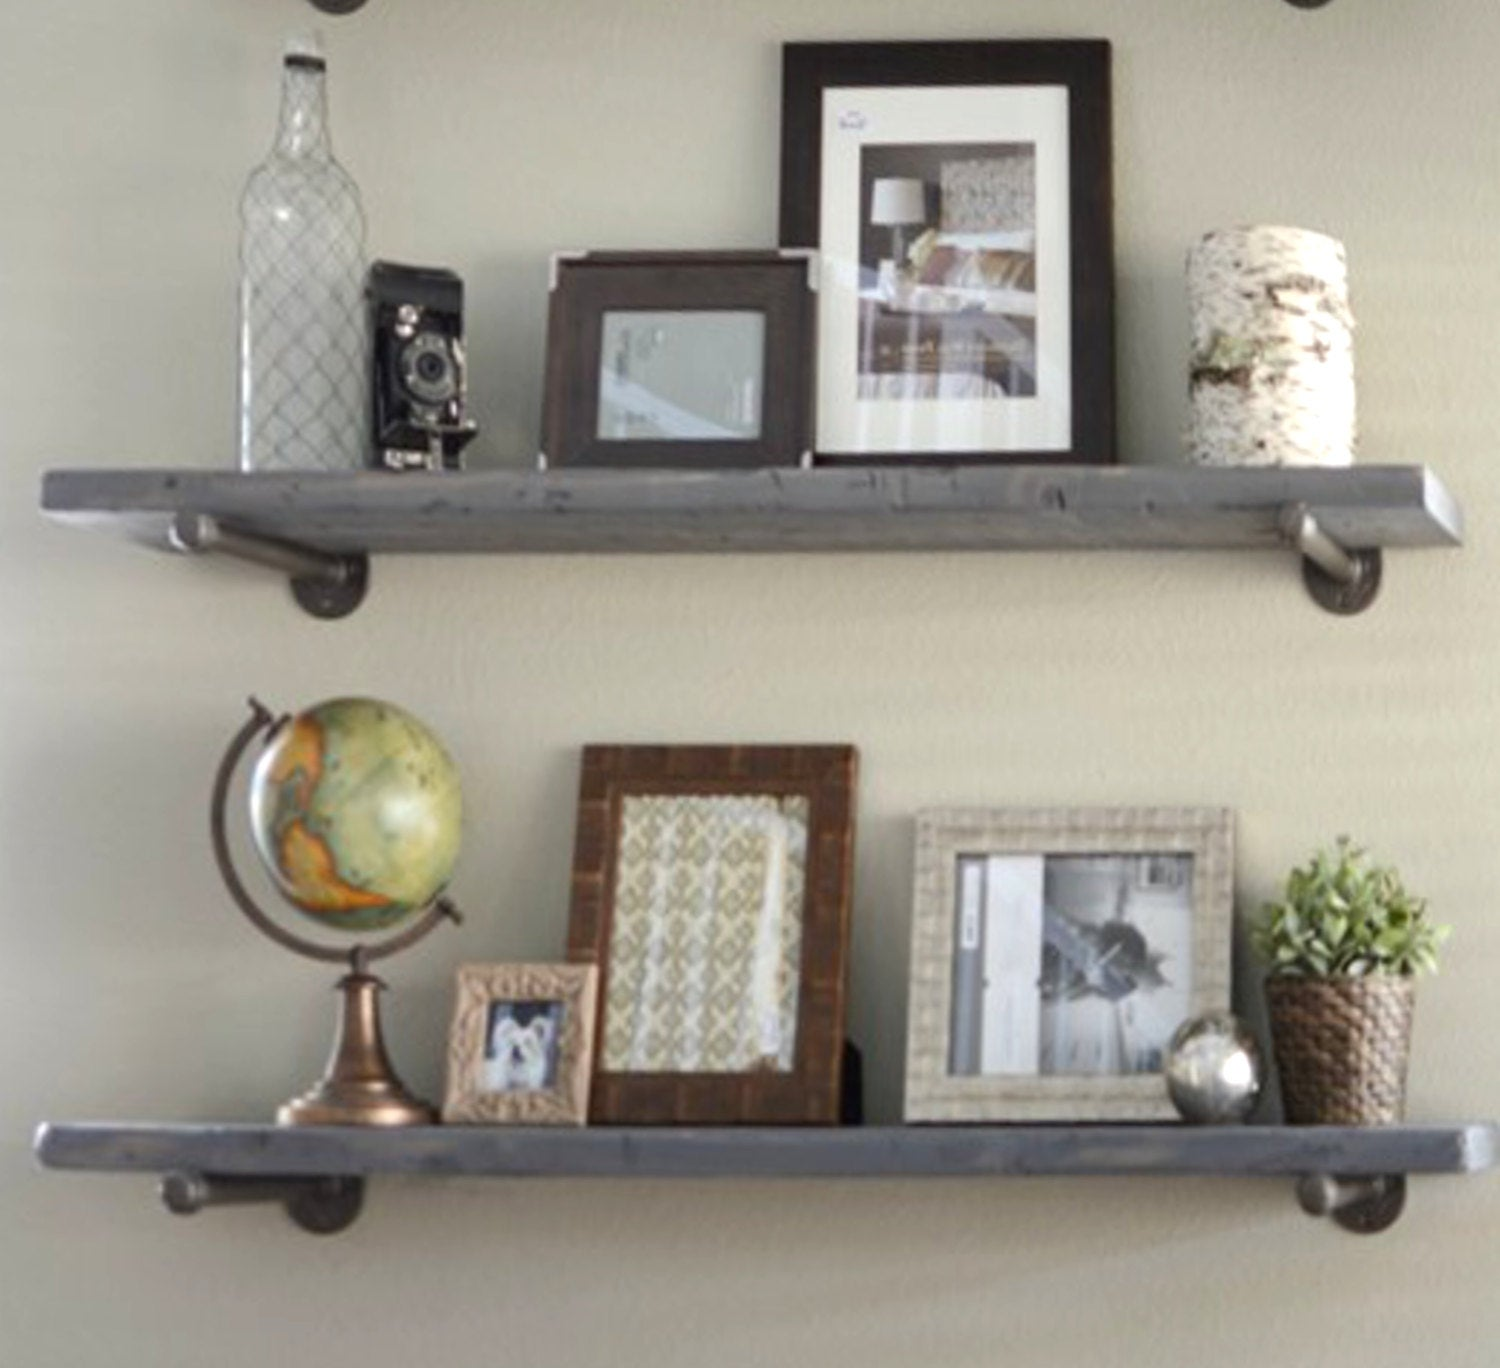 depth industrial gray wash floating shelf graywash etsy fullxfull lanb rustic shelves hafele sliding door hardware red and black living room decorating ideas kitchen garage